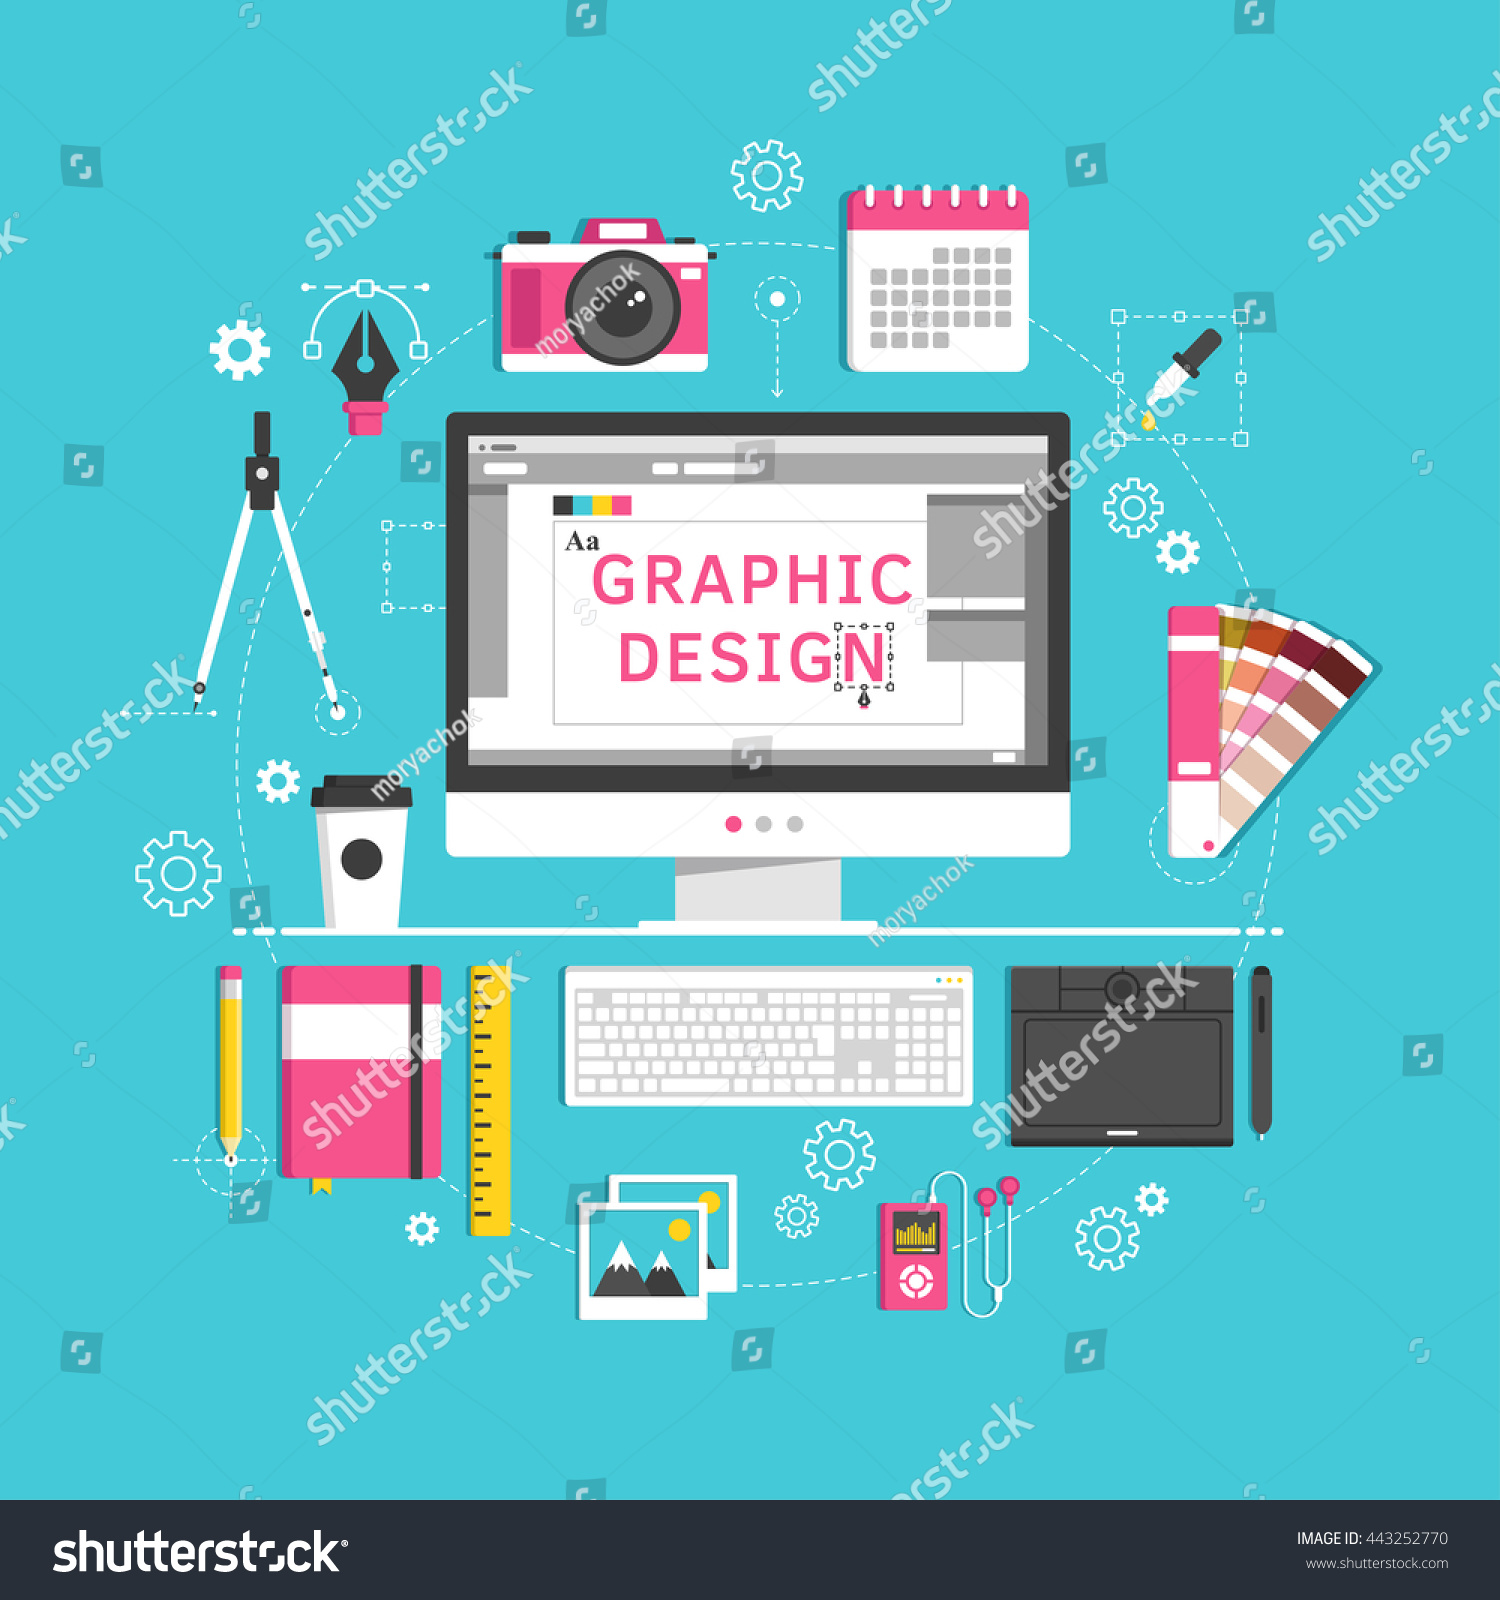 Flat Design Style Modern Vector Illustration Stock Vector